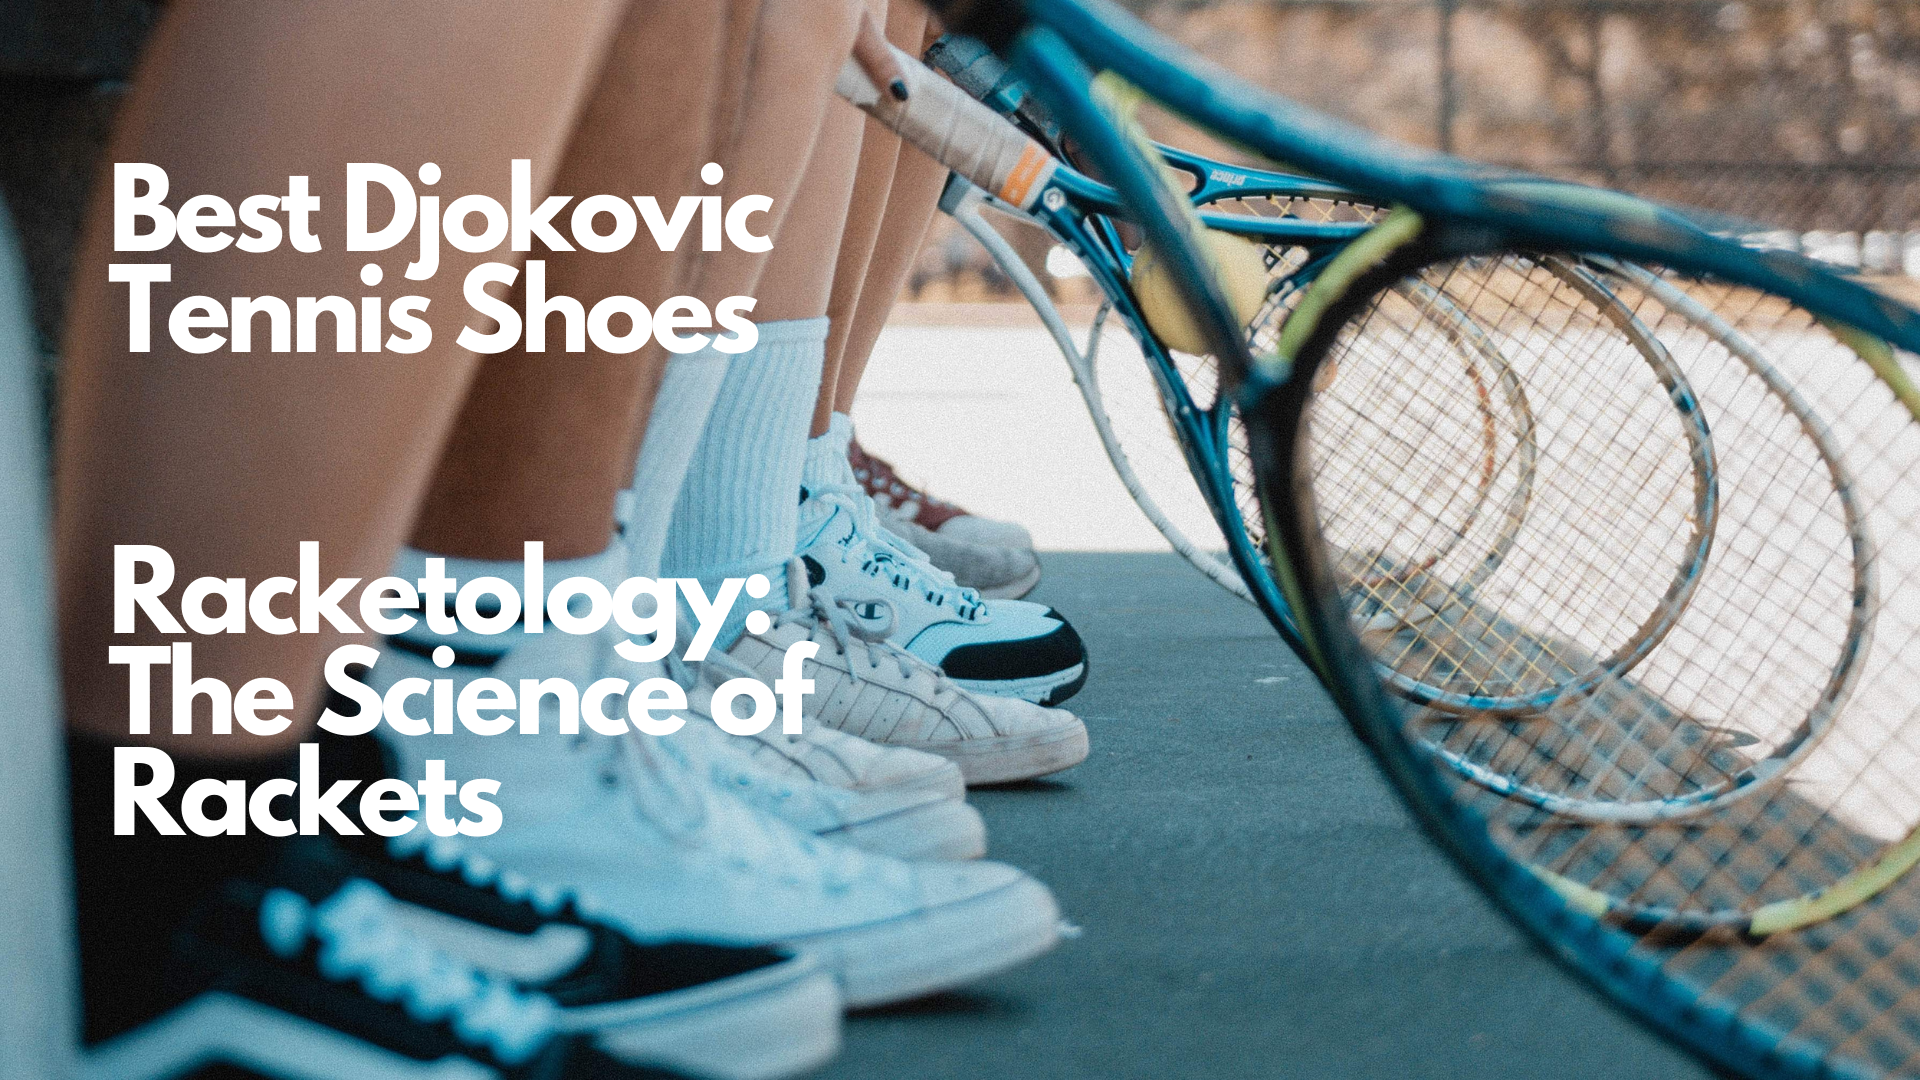 Best Djokovic tennis shoes